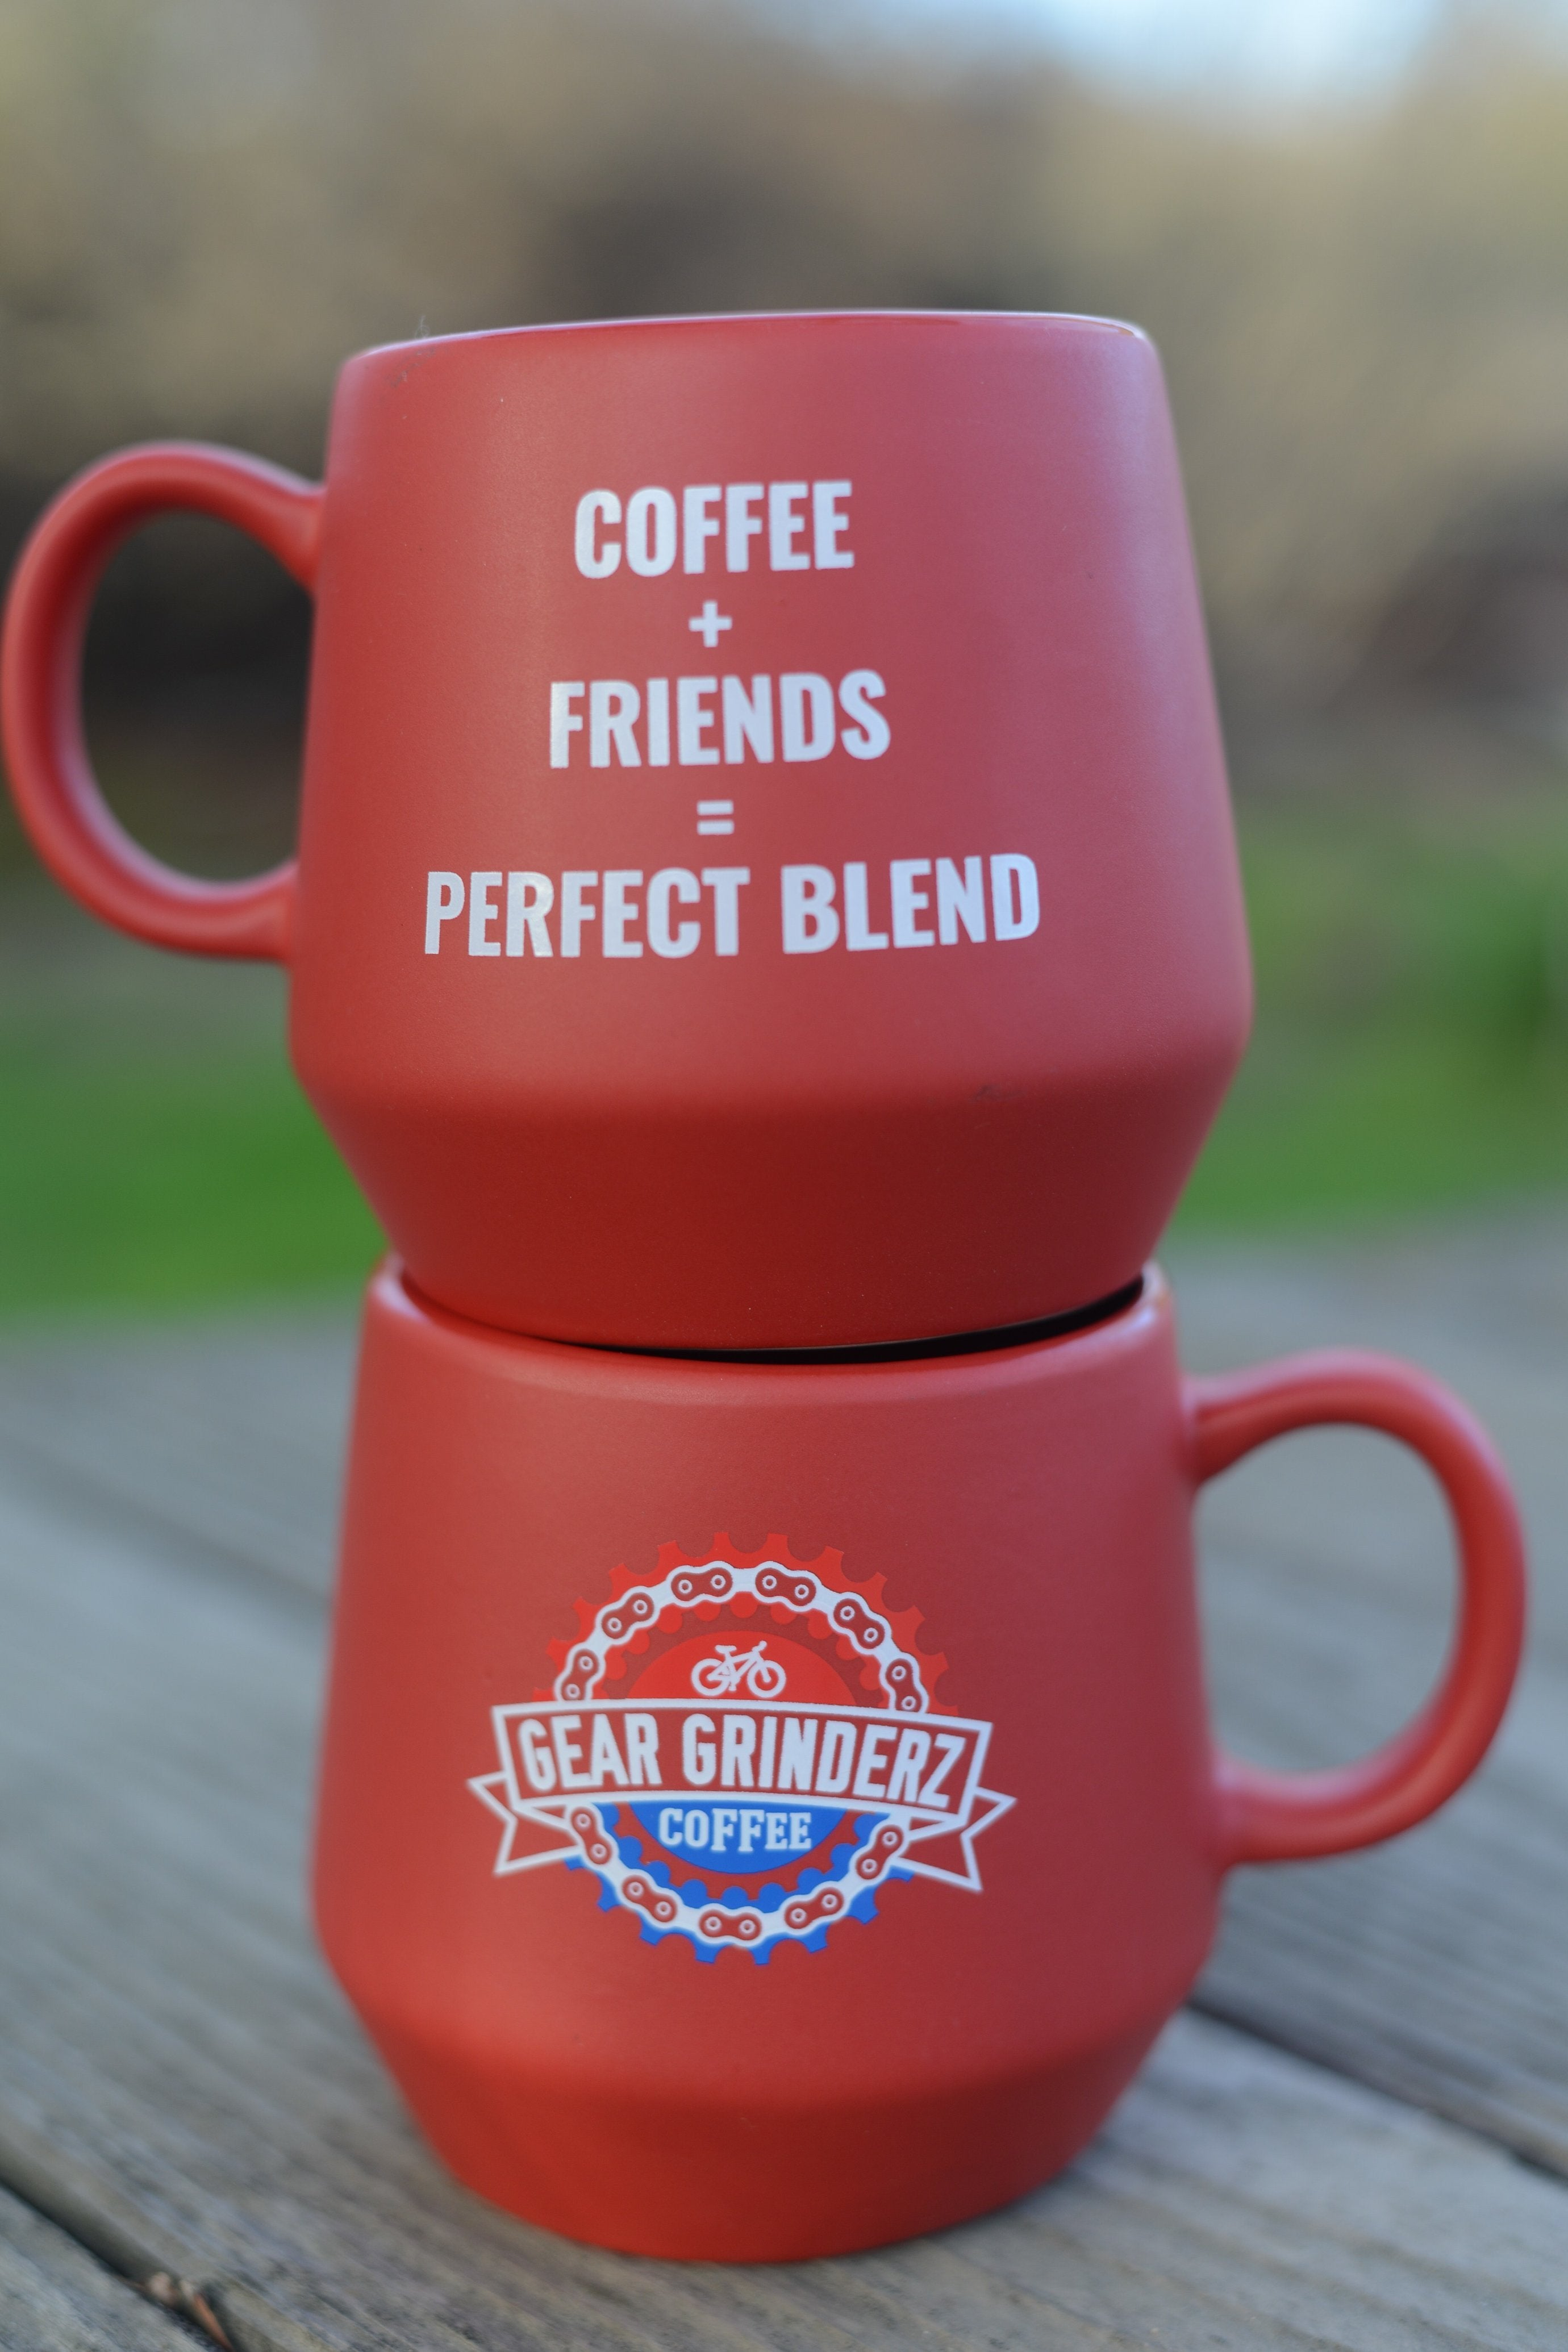 Gear Grinderz USA Holiday Mug - Gear Grinderz Coffee